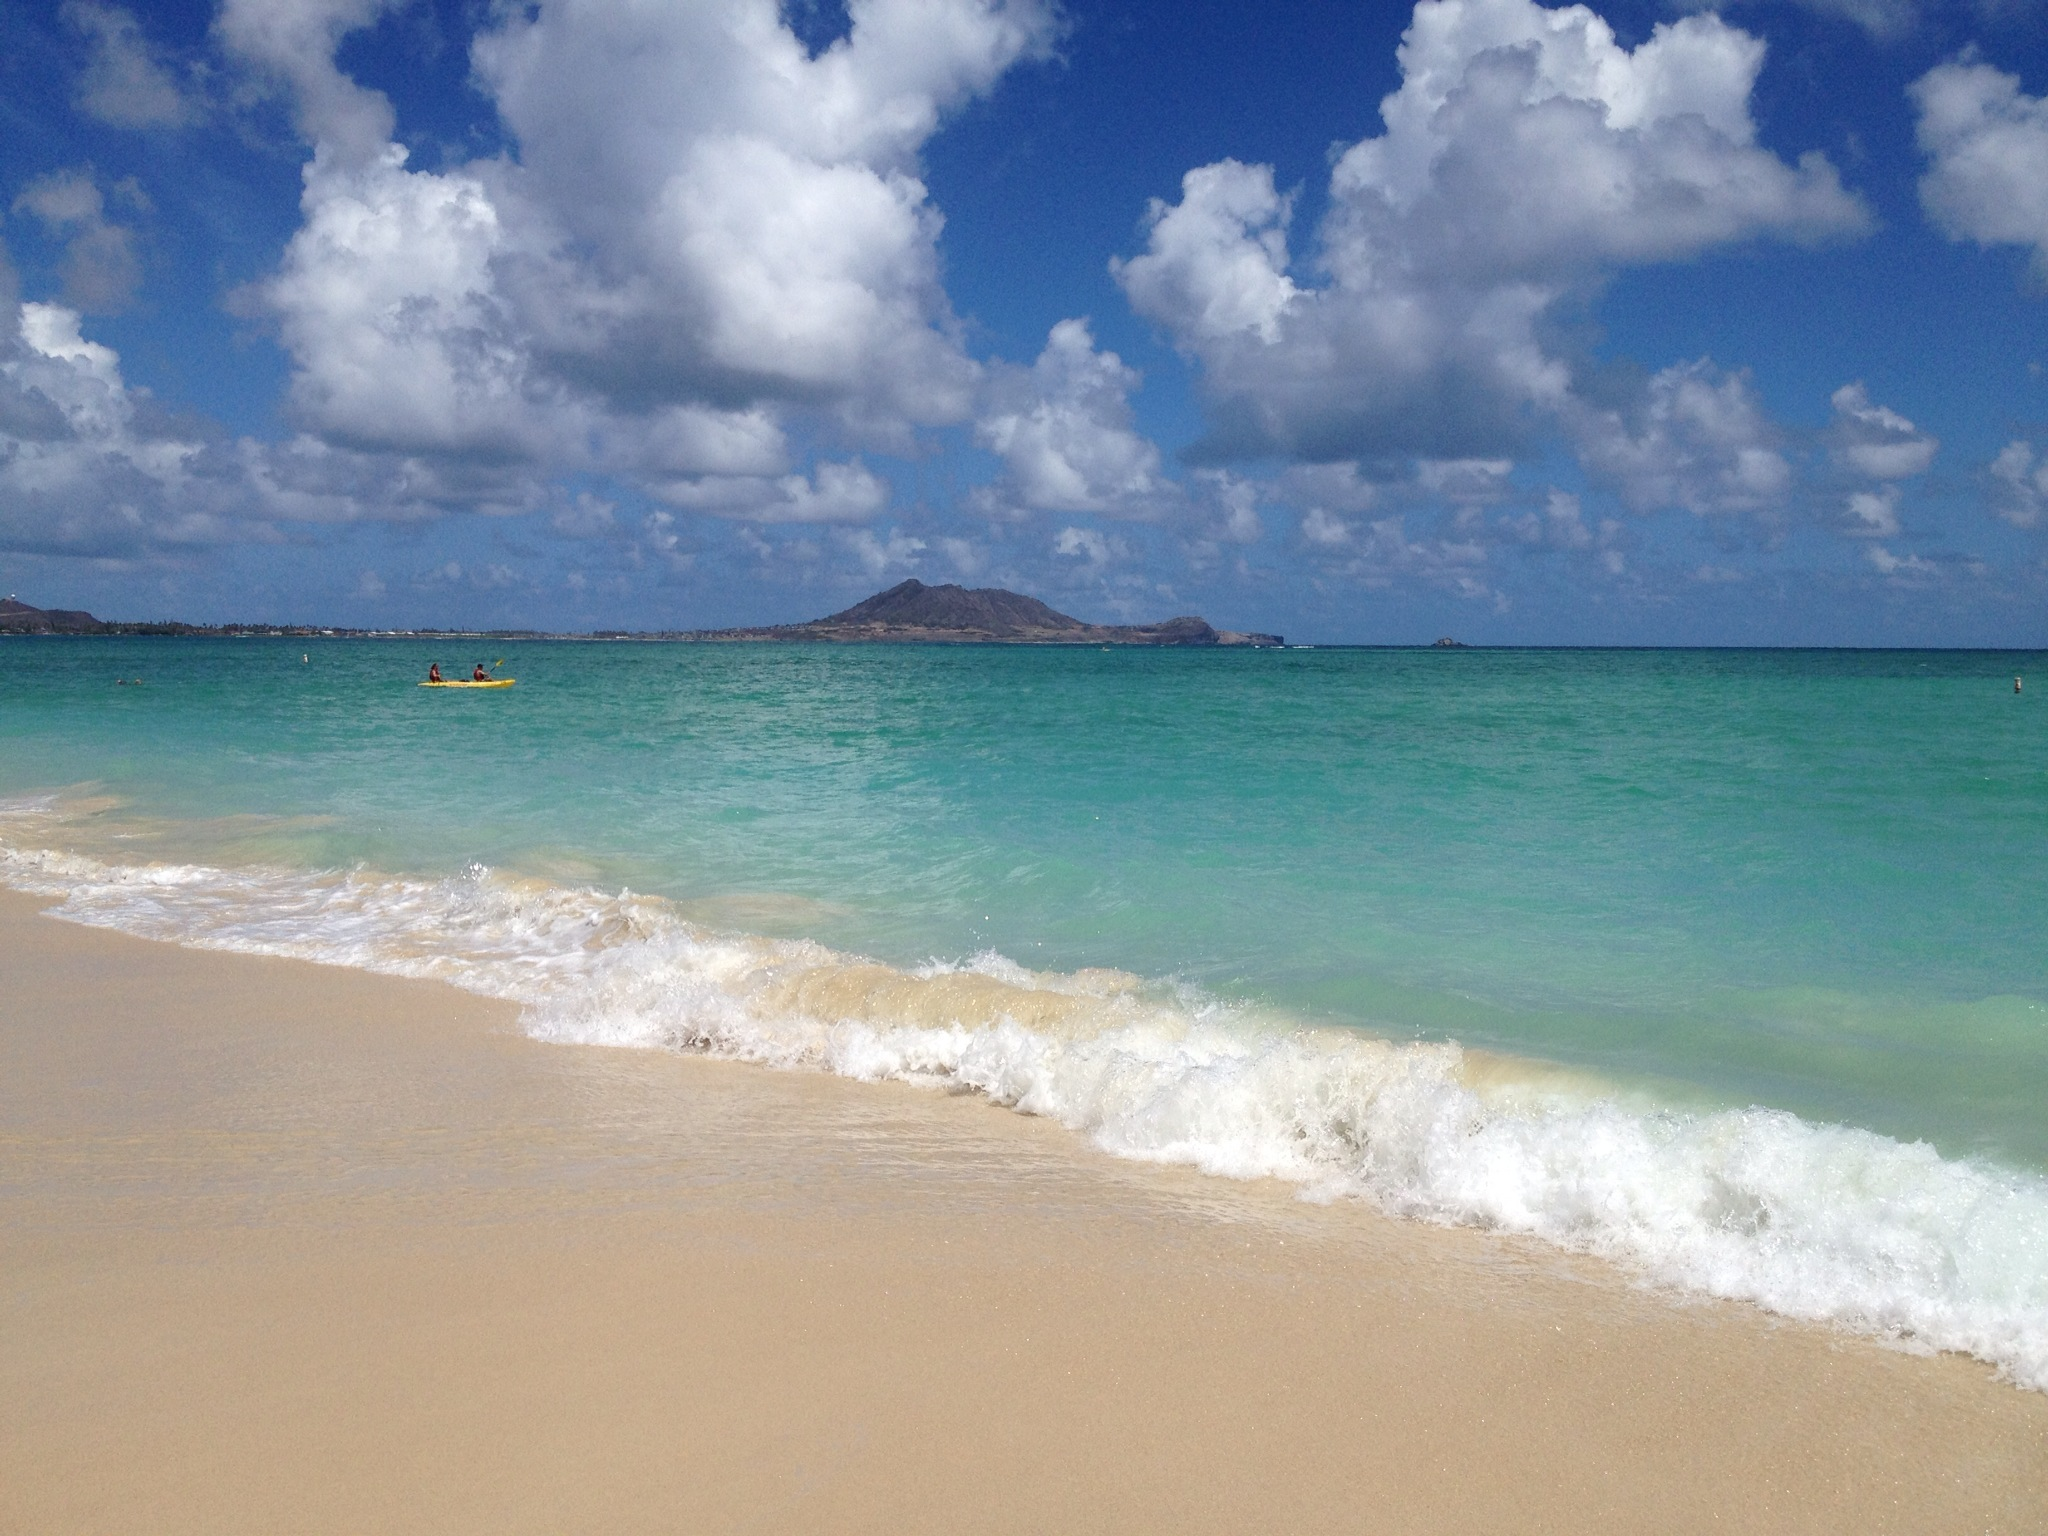 Perfect beach day in Honolulu, Hawaii